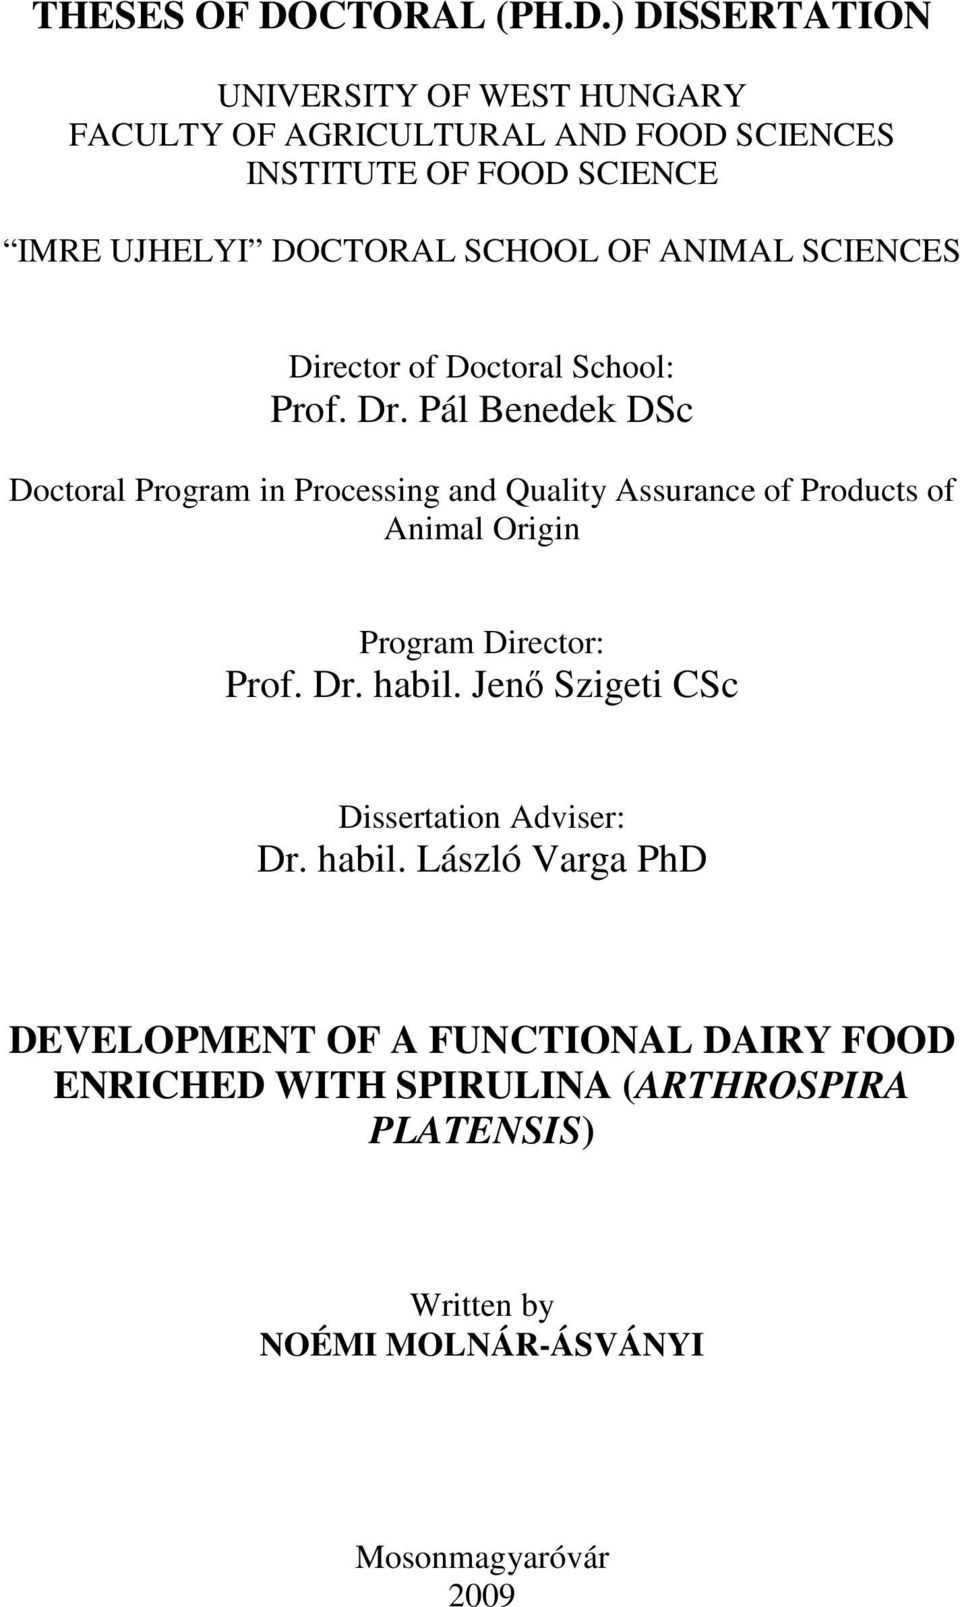 milk and dairy products as functional foods pdf